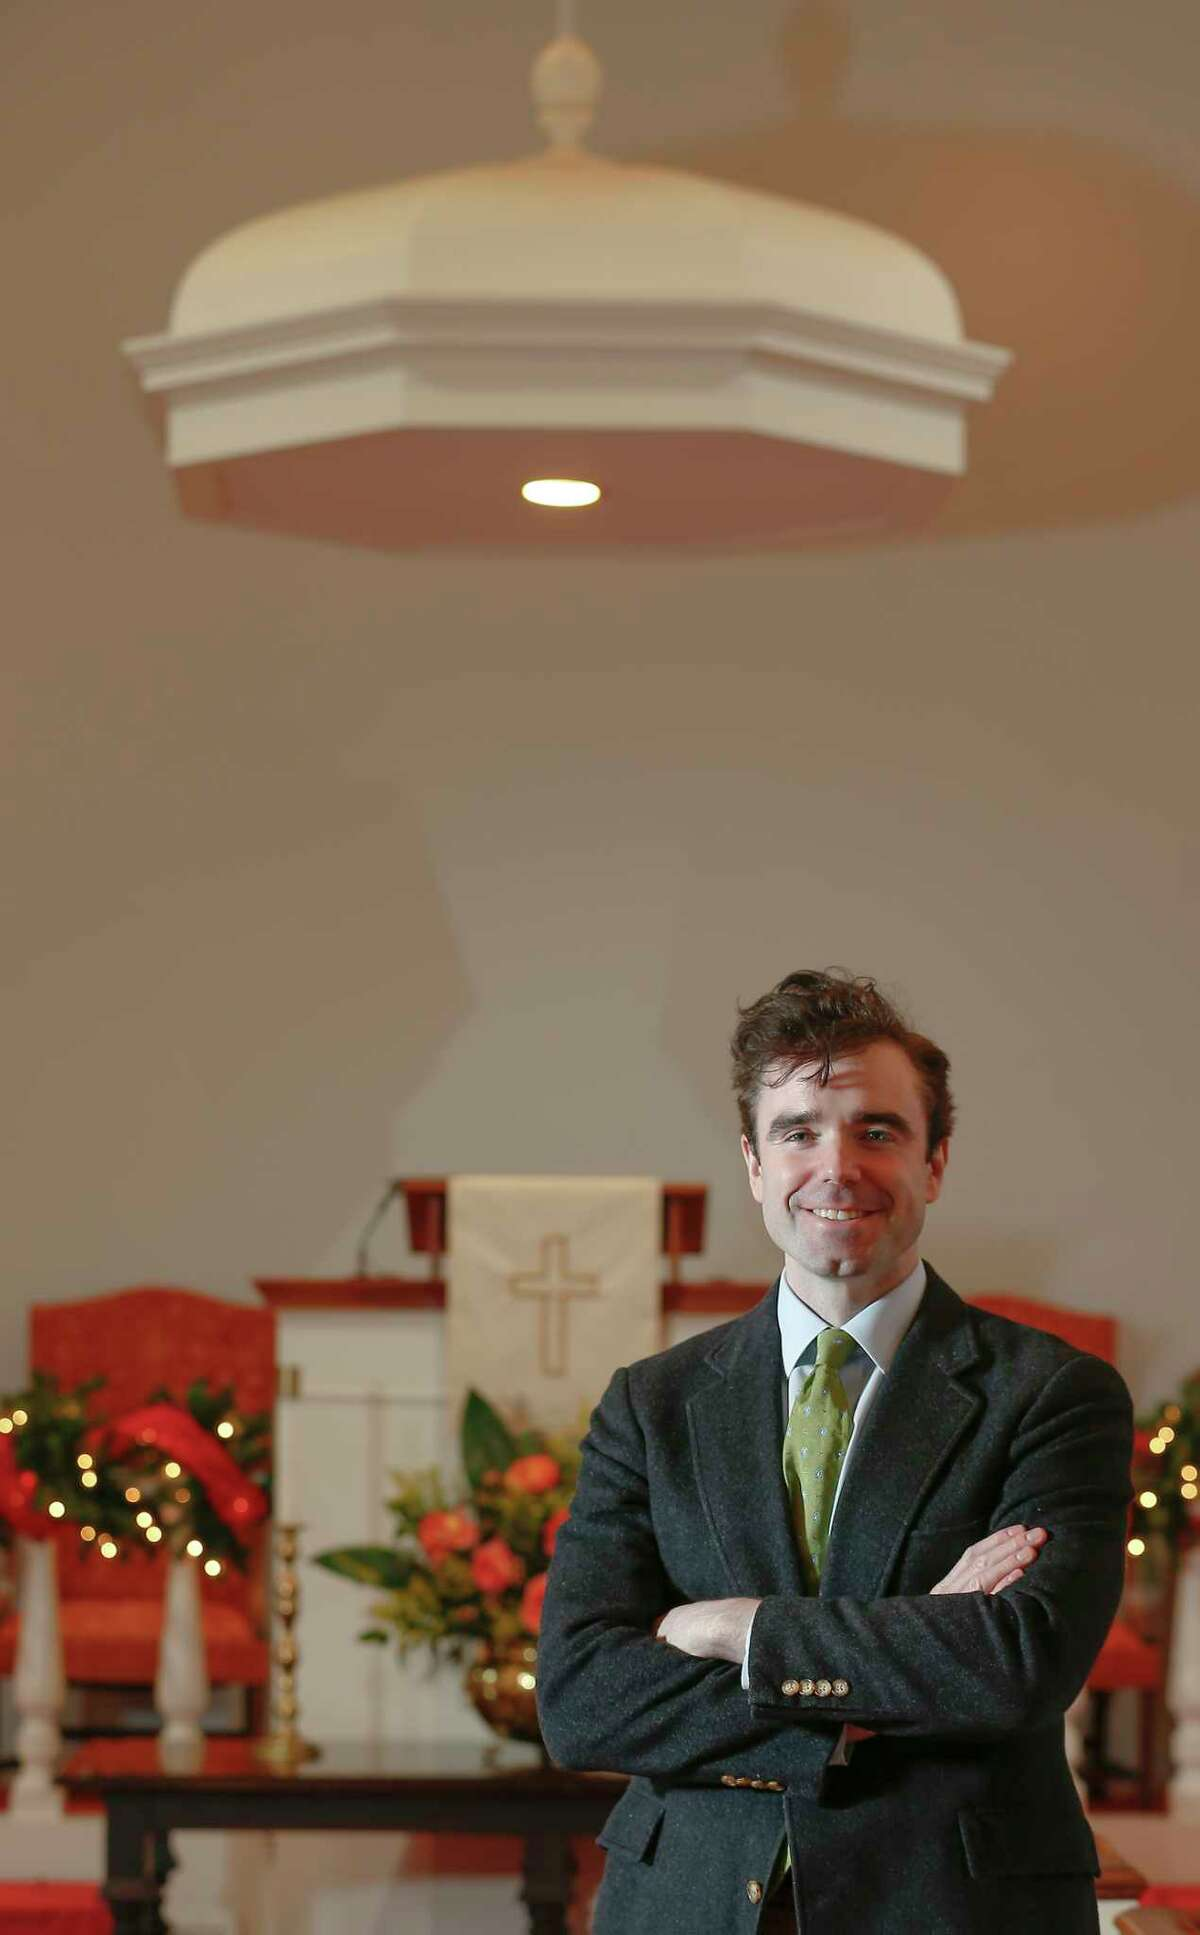 Rev. Jonathan C. Page is an openly gay pastor of First Congregational Church Tuesday, Jan. 2, 2018, in Houston. Rev. Page uses the church websites to communicate their policies. ( Steve Gonzales / Houston Chronicle )